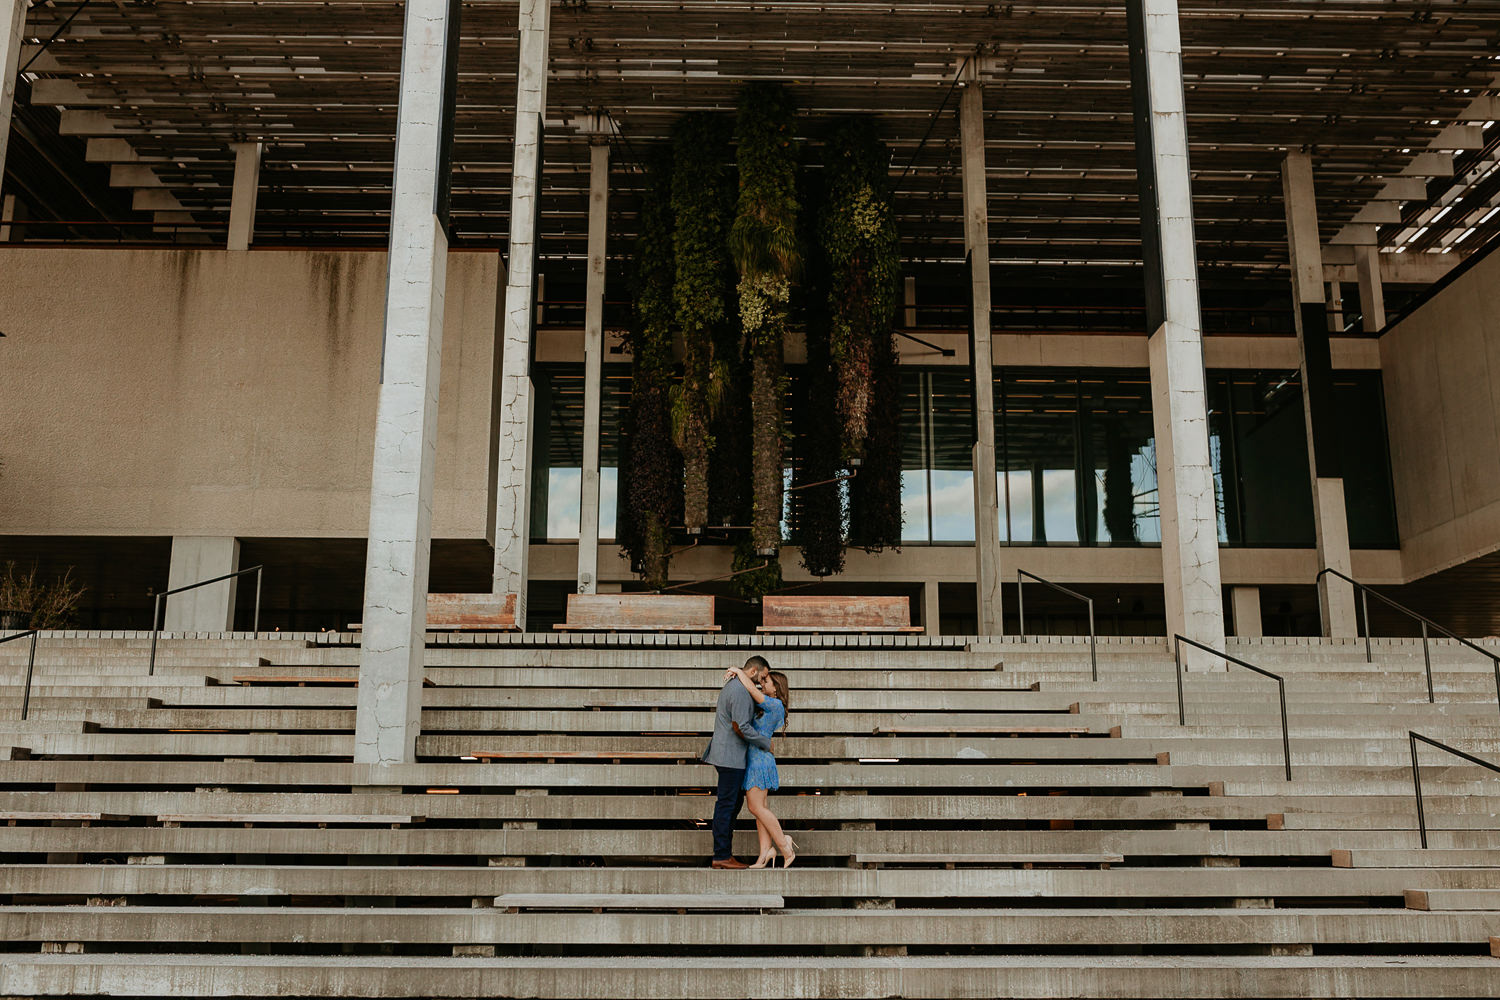 his got his arms around her waist, she has hers around his shoulders at pamm steps